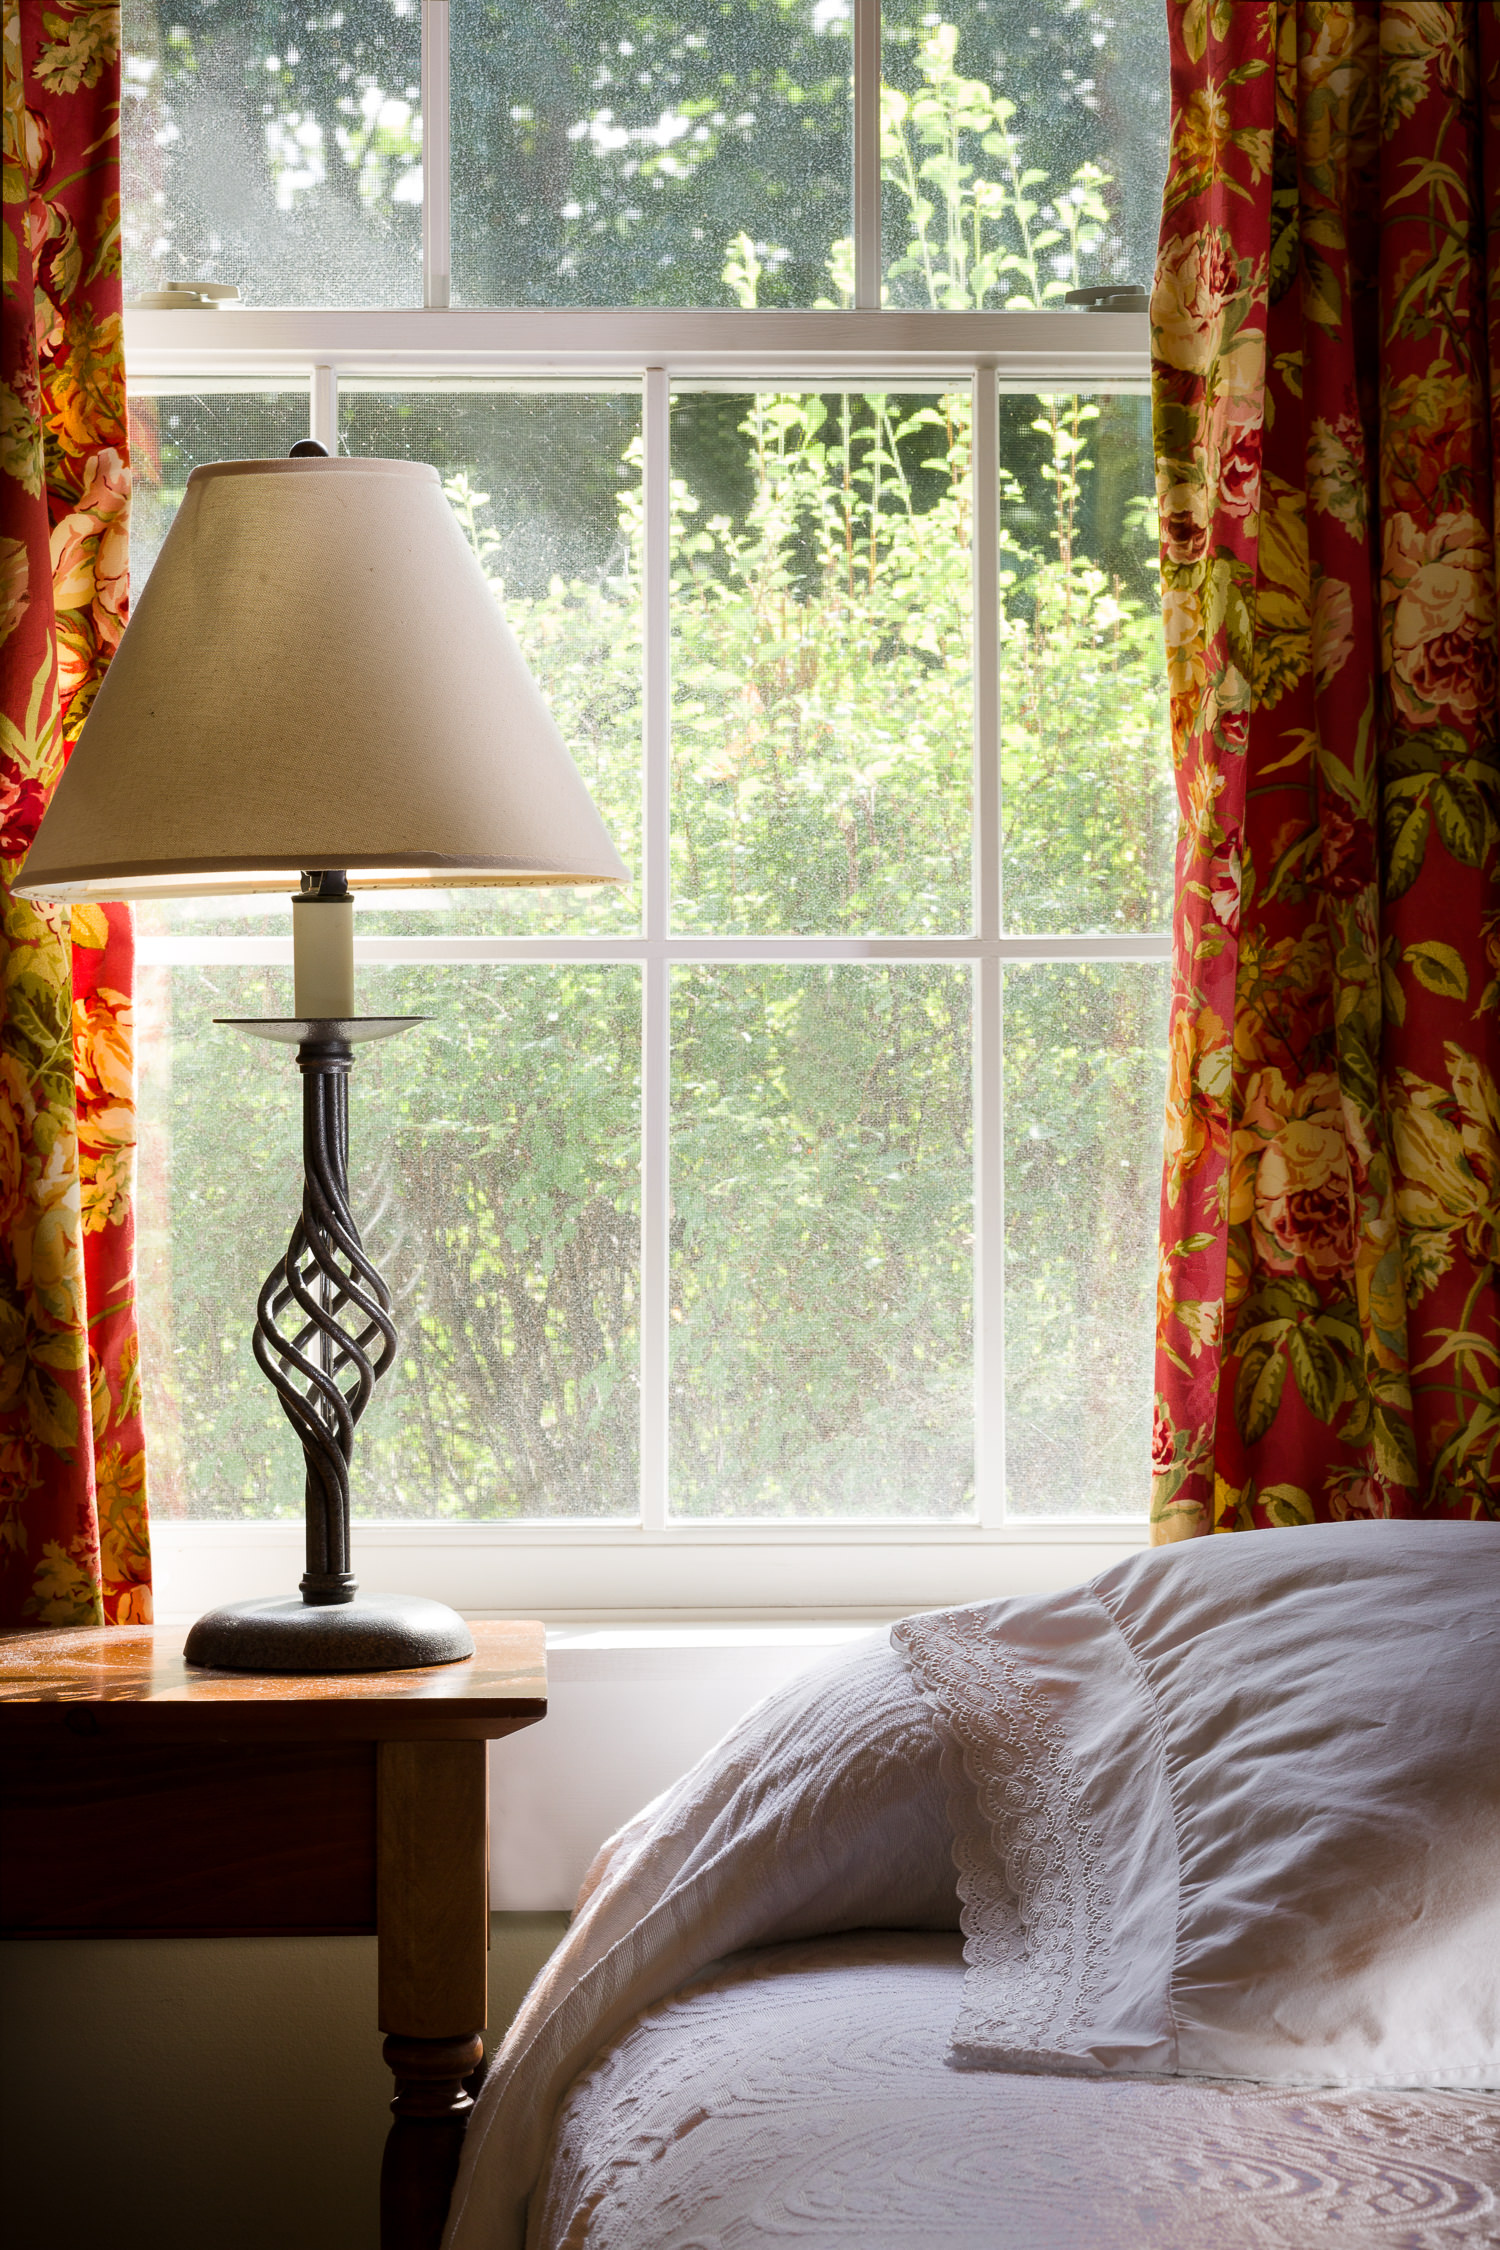 A bedside lamp detail in a Tyler Place Resort cottage bedroom for website marketing photos by Studio SB.